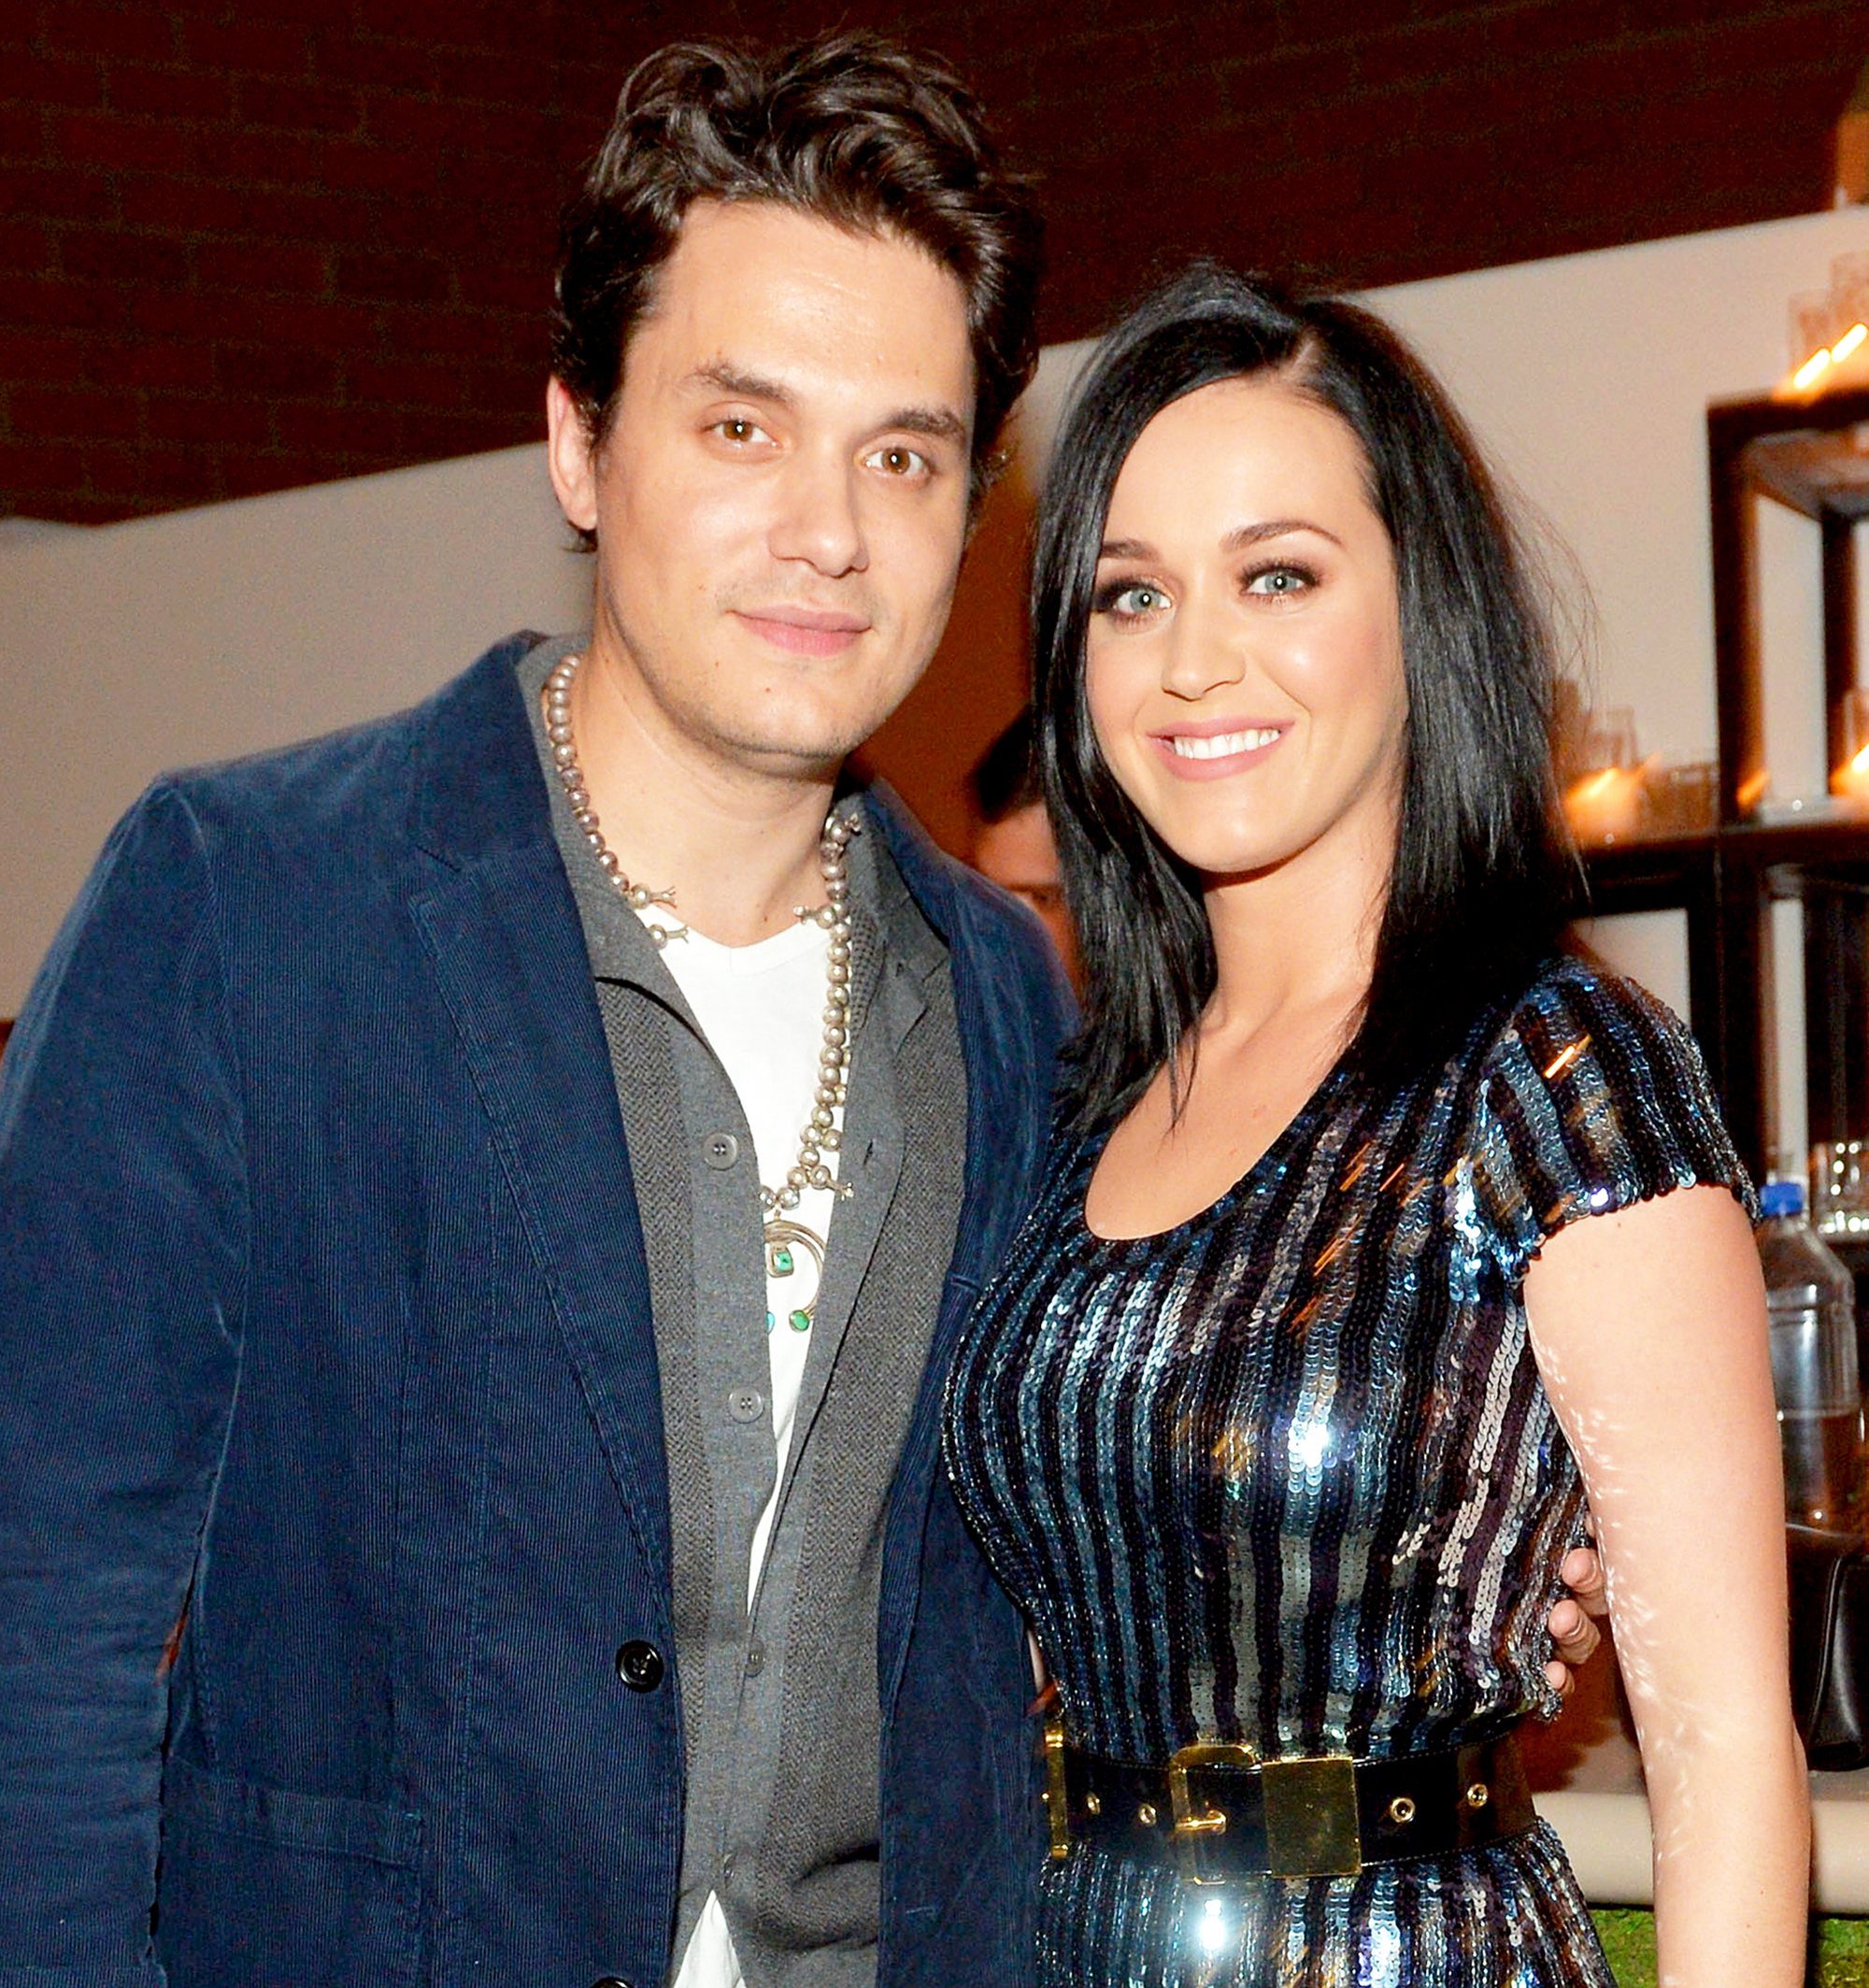 Katy Perry Dating Who Now